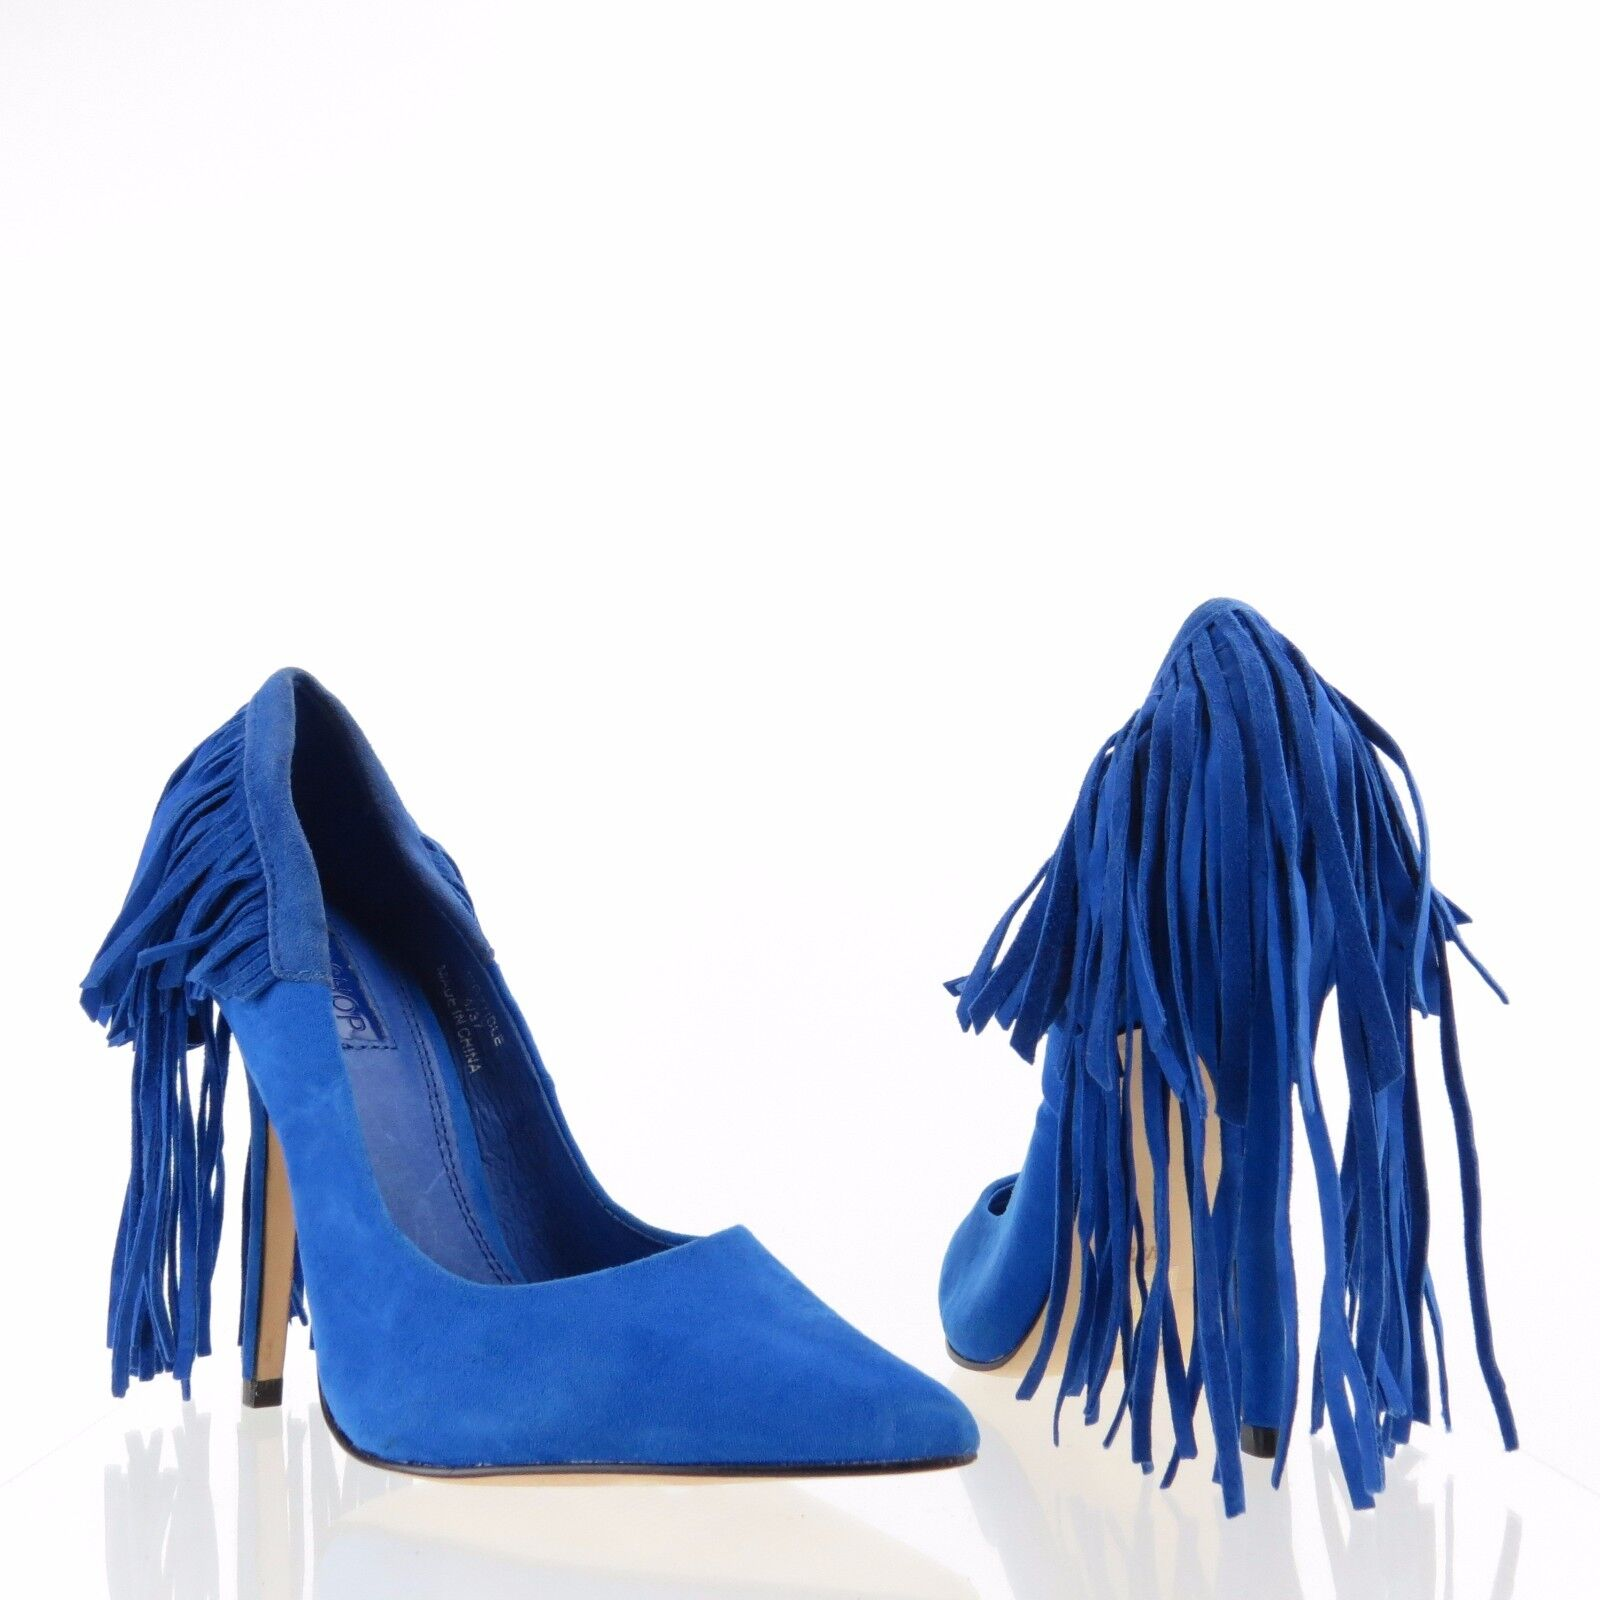 Women's Topshop Geri Fringed shoes bluee Suede Heel Pumps Size NEW